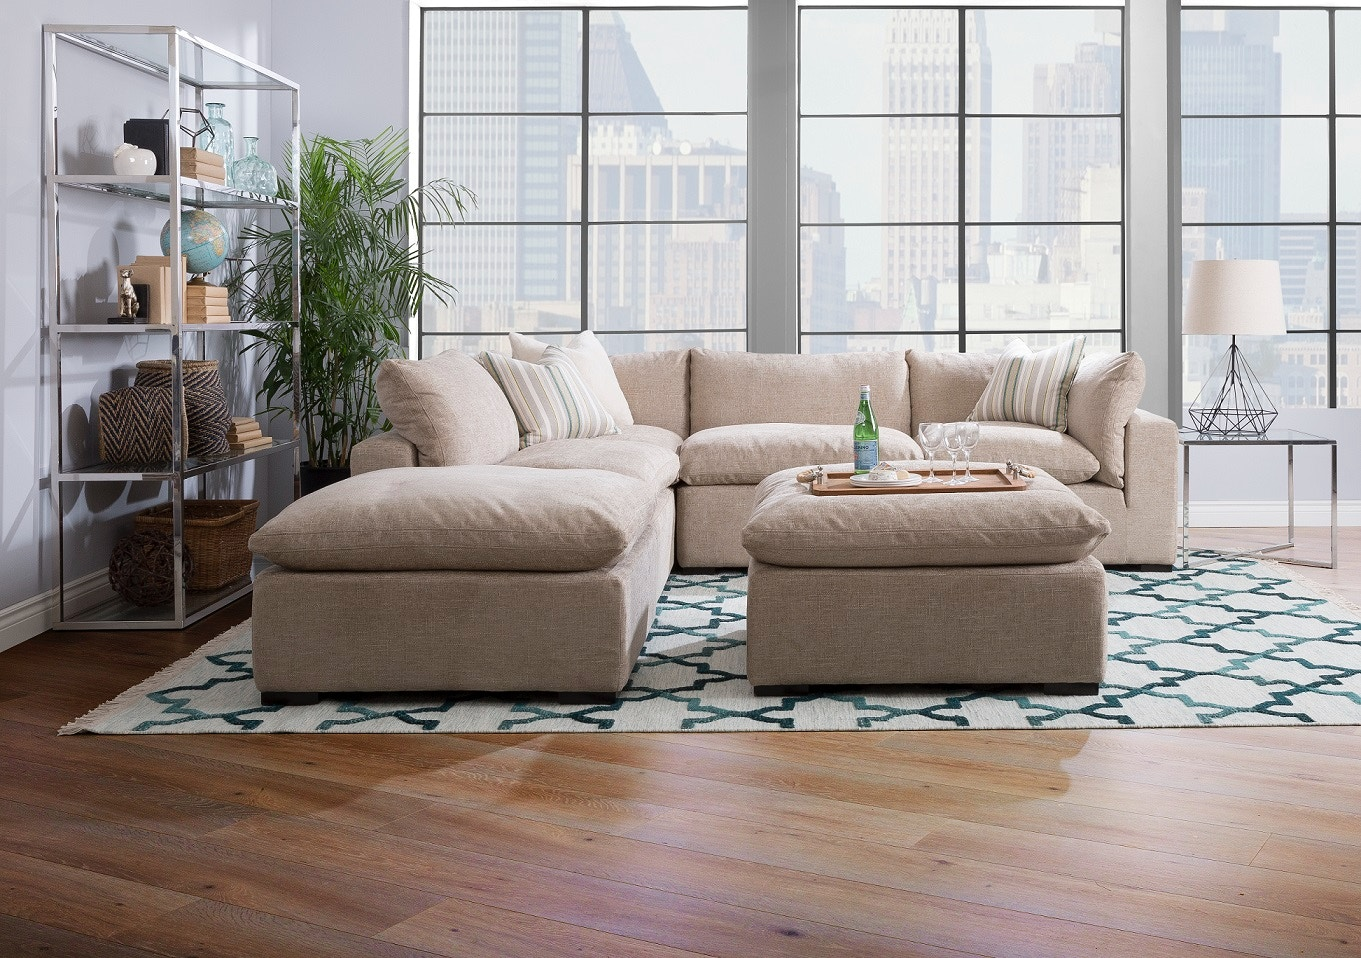 2660 Modular Sectional : sectionals ottawa - Sectionals, Sofas & Couches